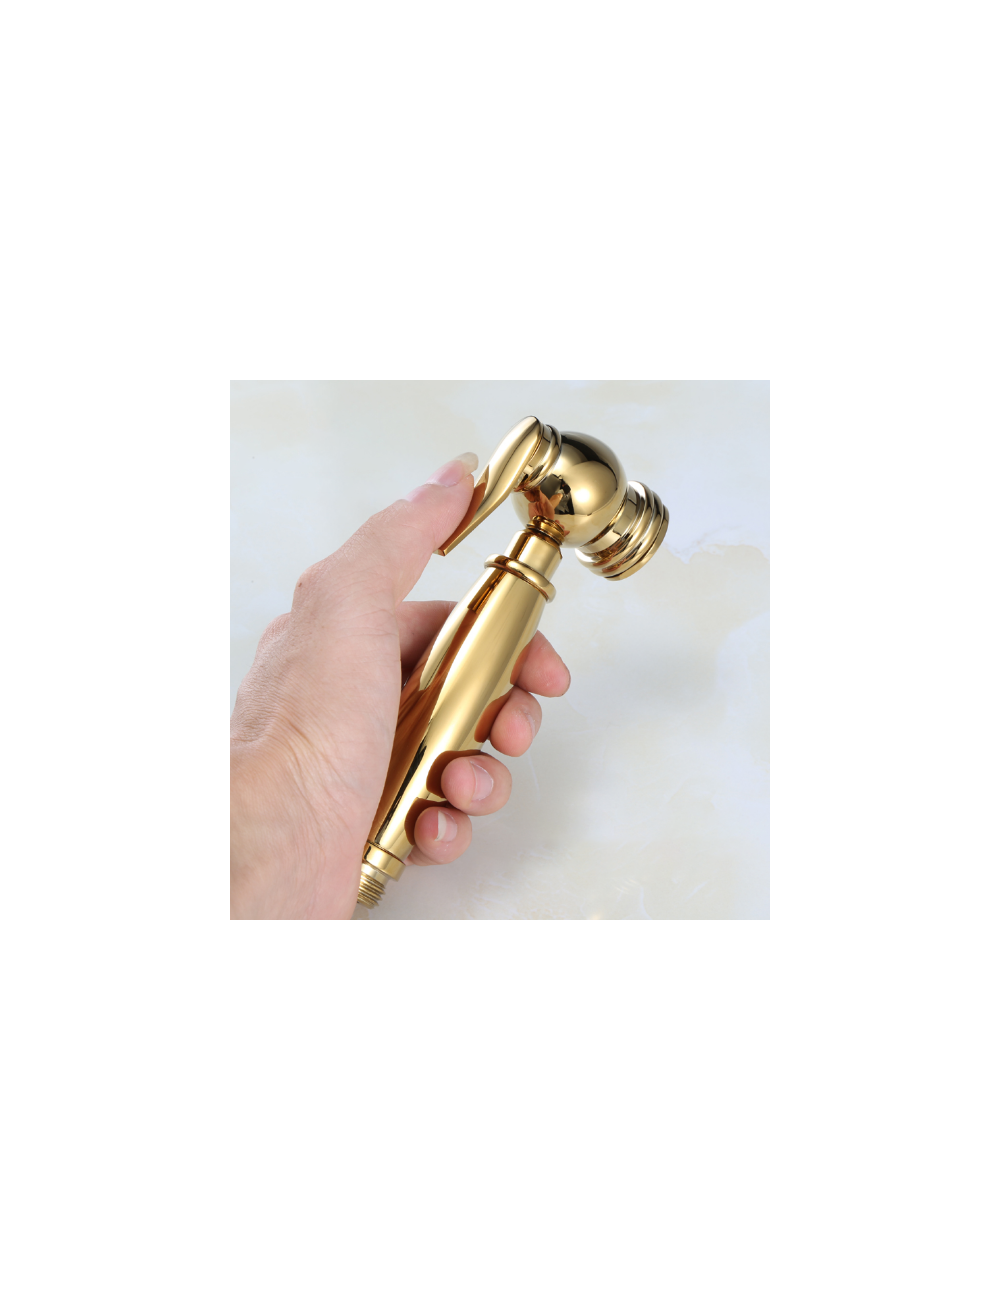 Miroir mural led Star, bluetooth 80 x 60 cm